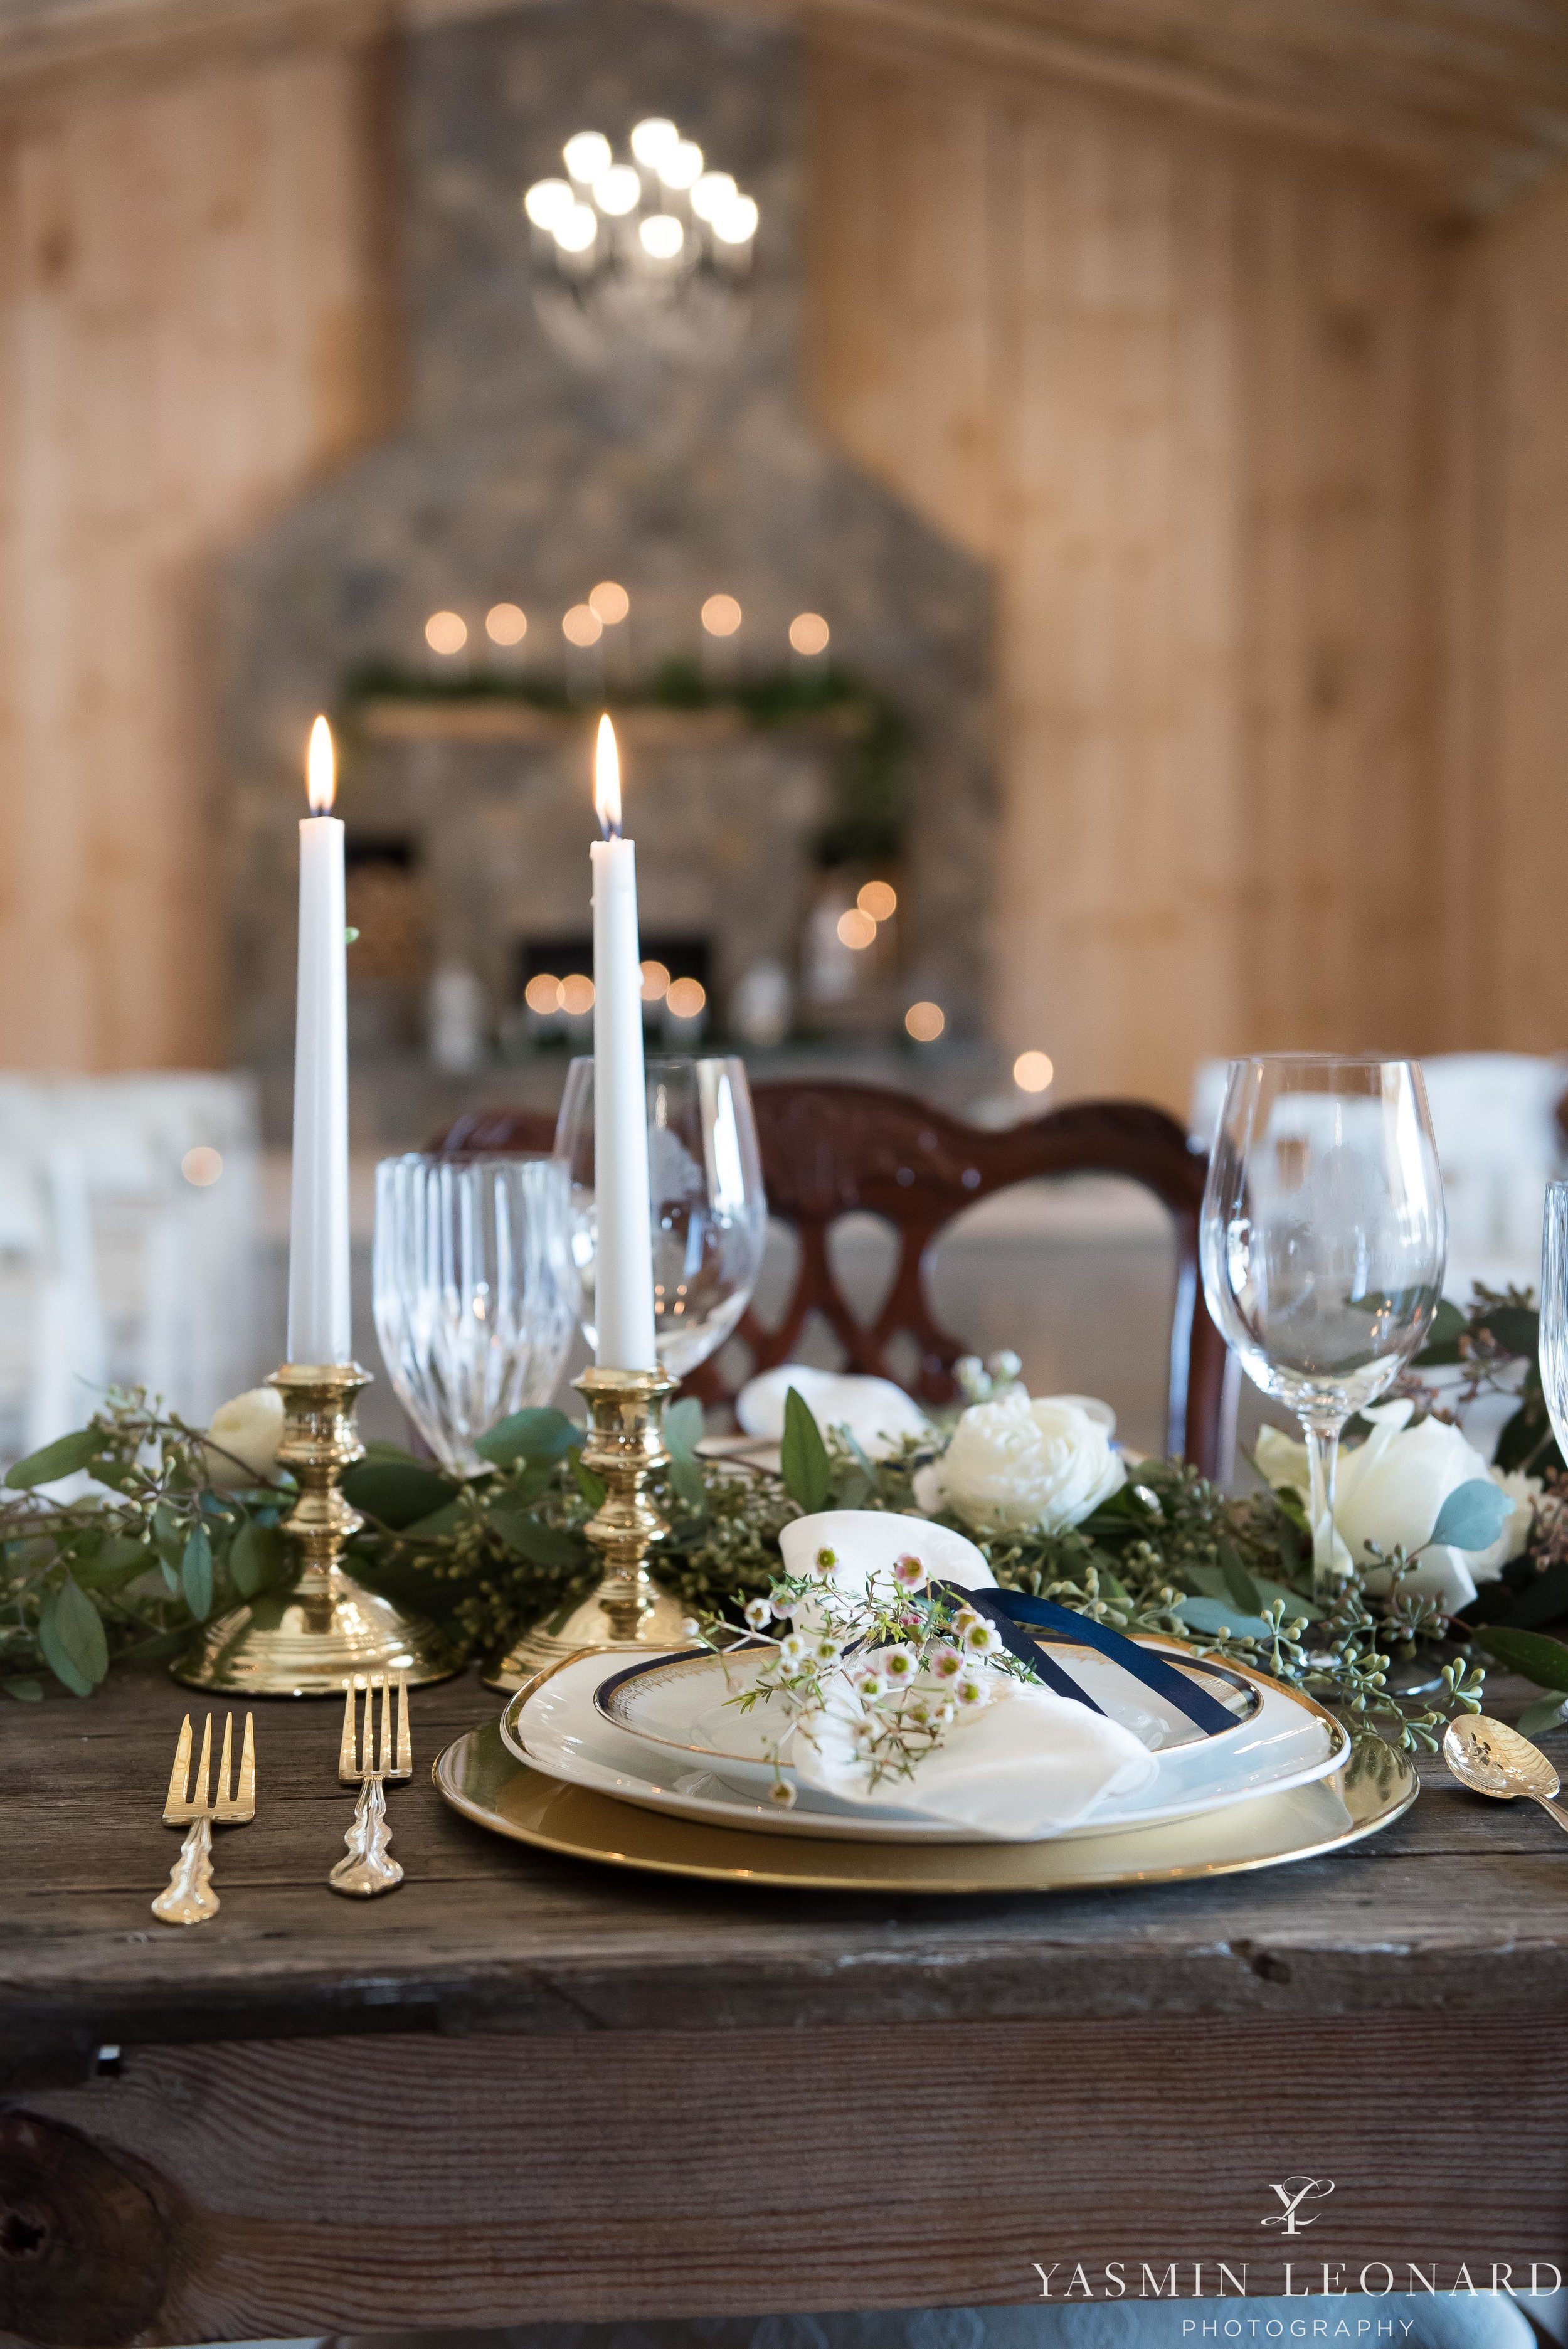 Old Homeplace Vineyard - Grits and Glitter - Dashing Dames Bridal Boutique - Just Priceless - Yasmin Leonard Photography - High Point Weddings - NC Weddings - NC Wedding Venues - High Point Jewelers - NC Wines - NC Vineyards - Cupcake Cuties-27.jpg